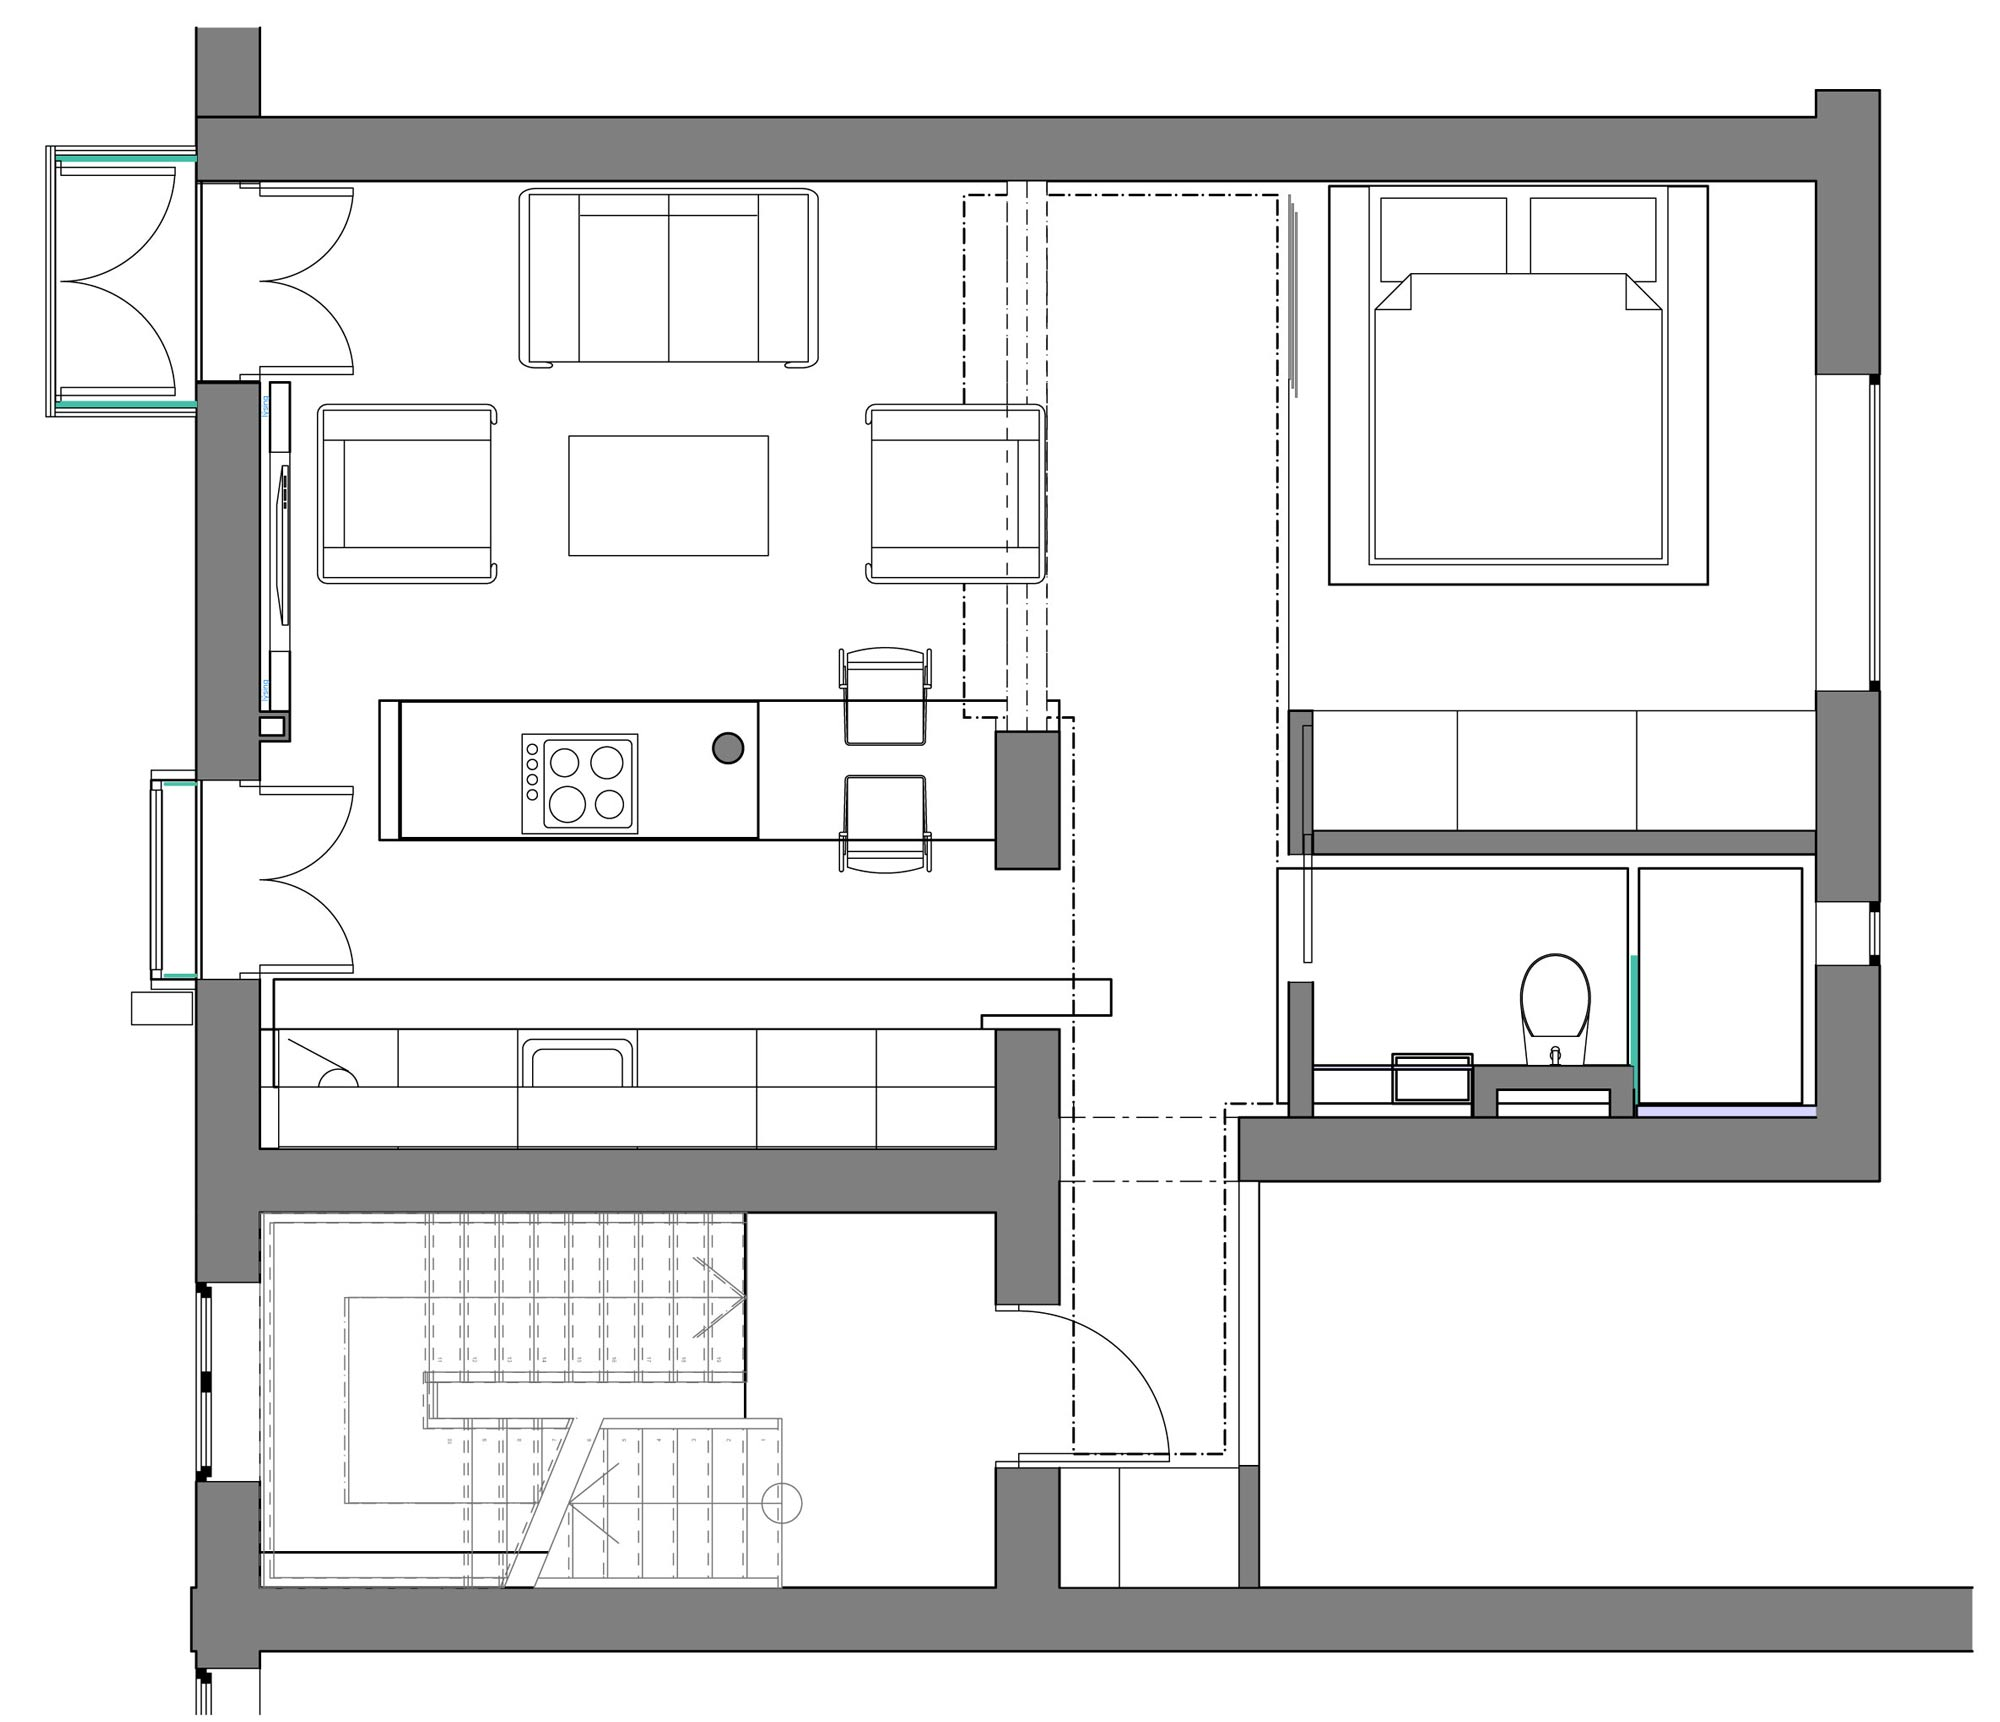 Apartment reykjavik iceland floor plan - Planning the studio apartment floor plans ...